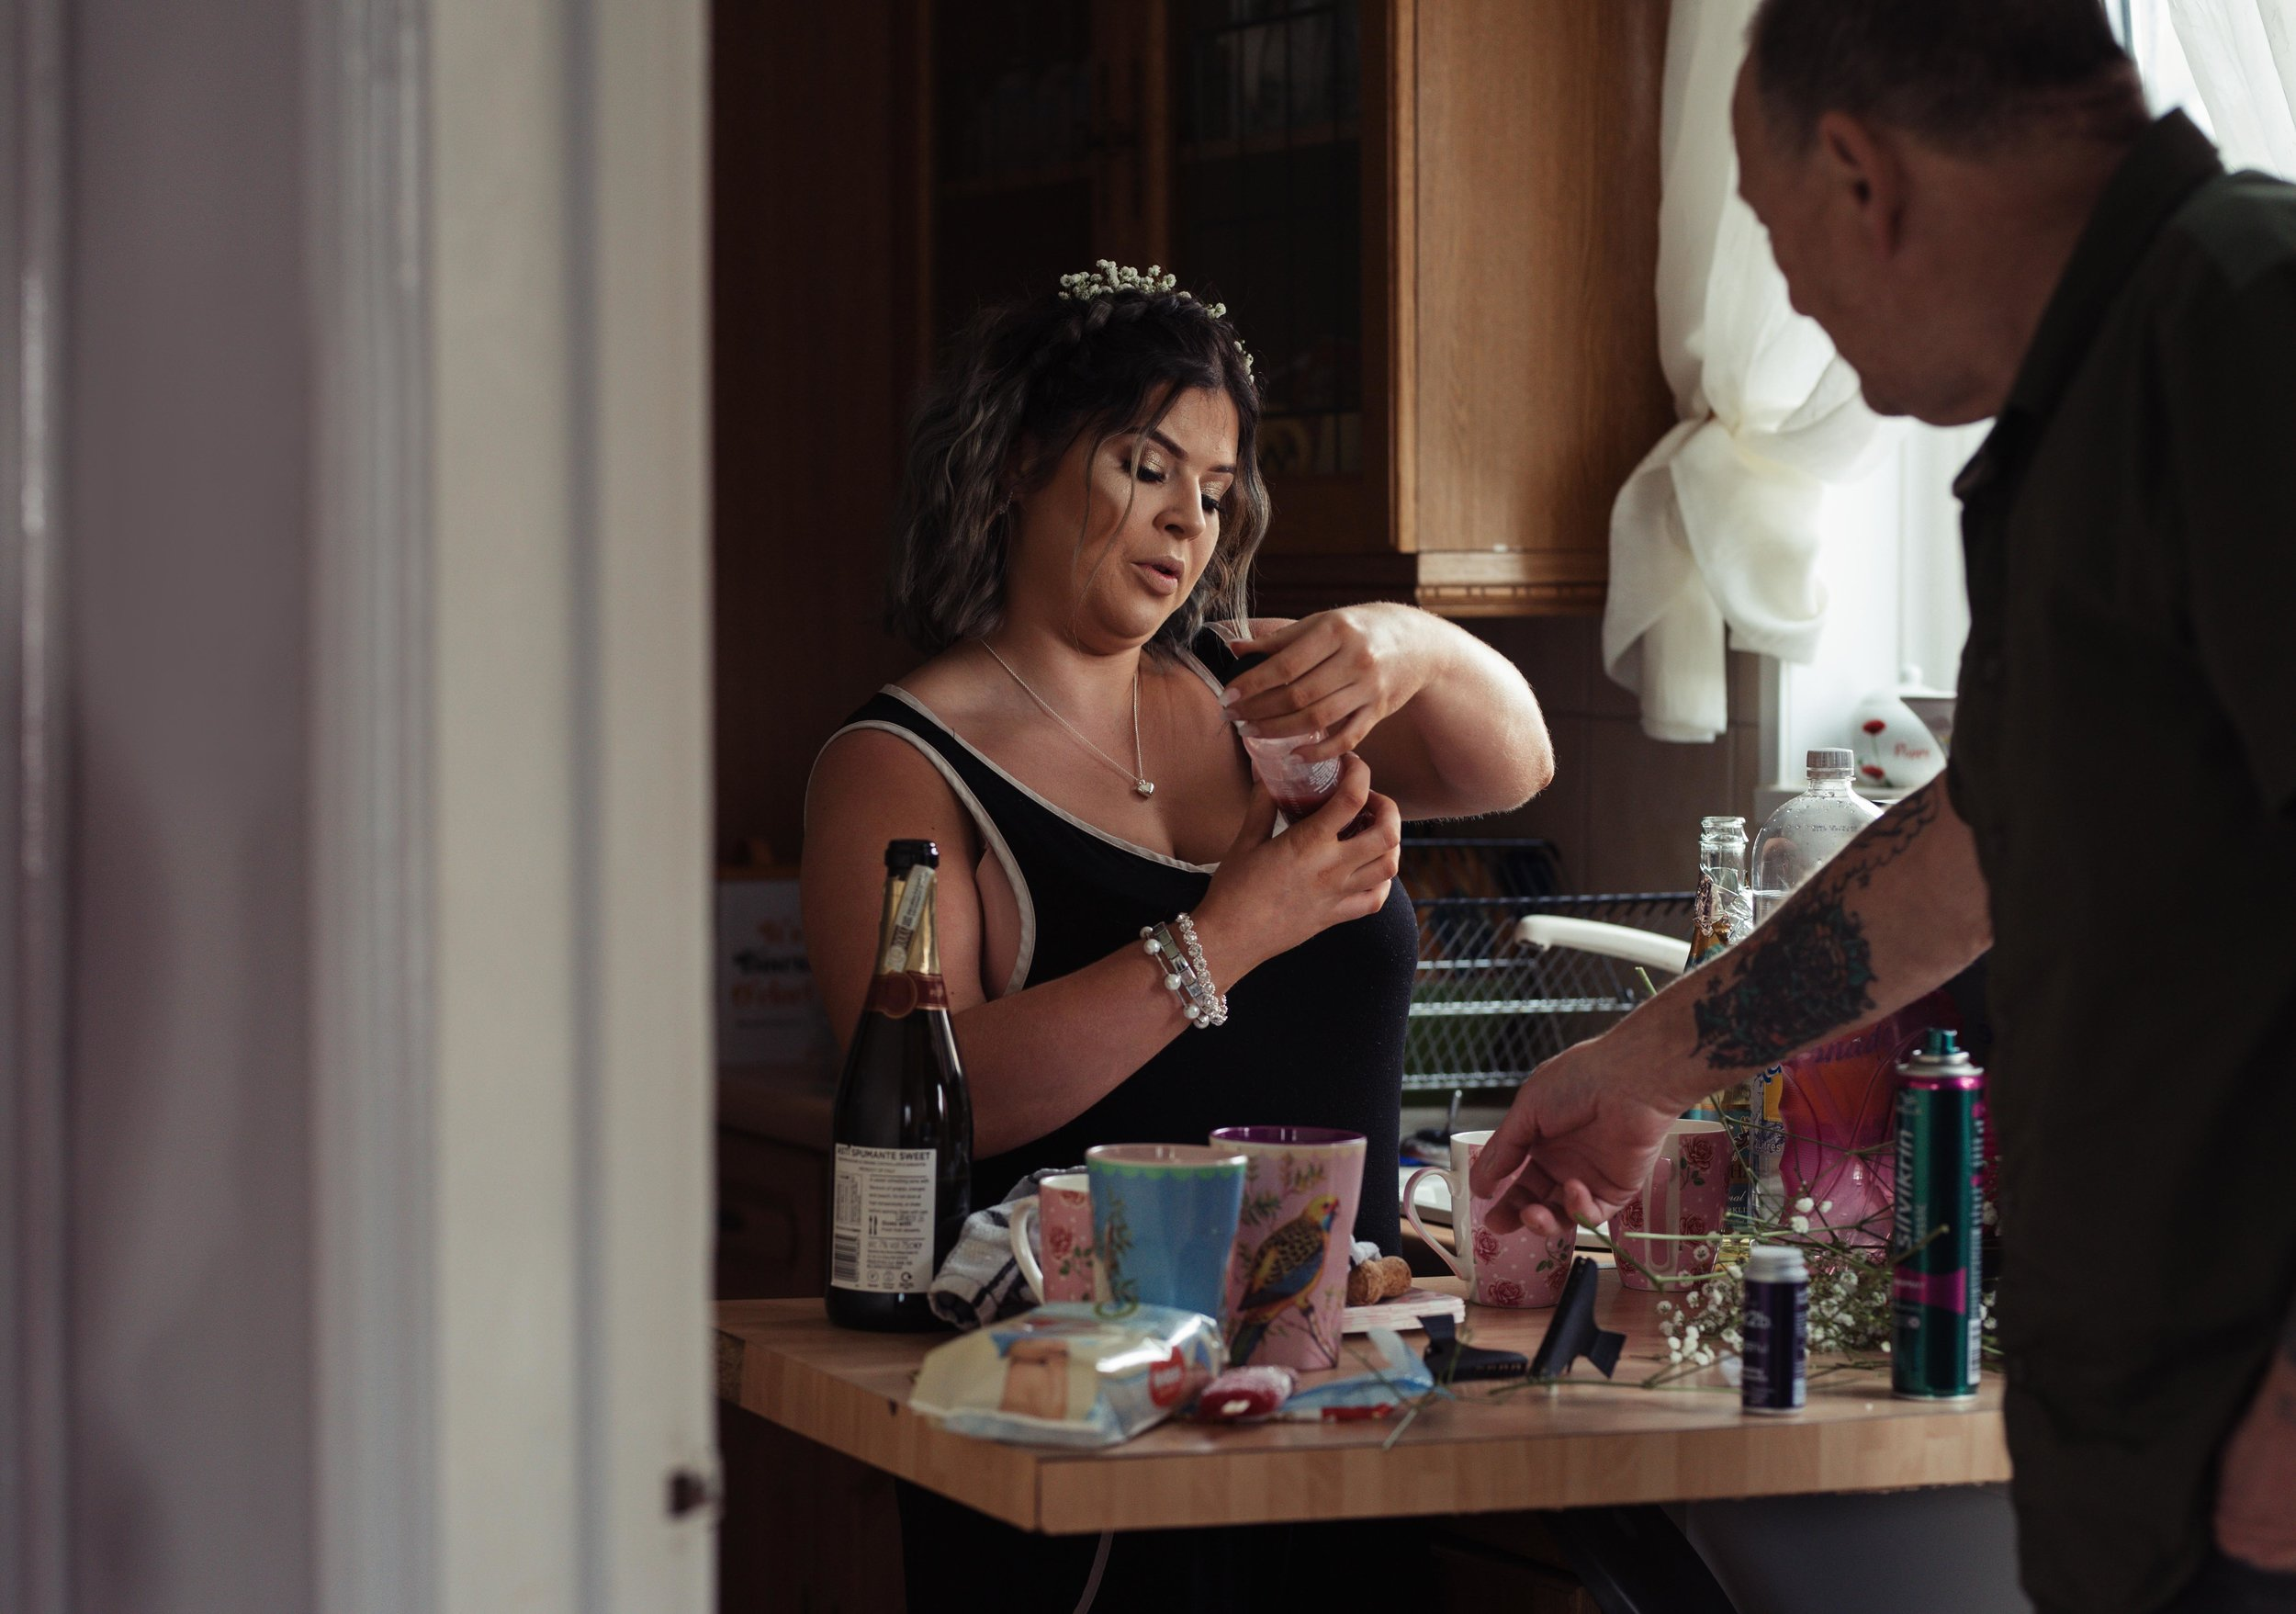 One of the bridesmaids looks at her nail varnish in the kitchen